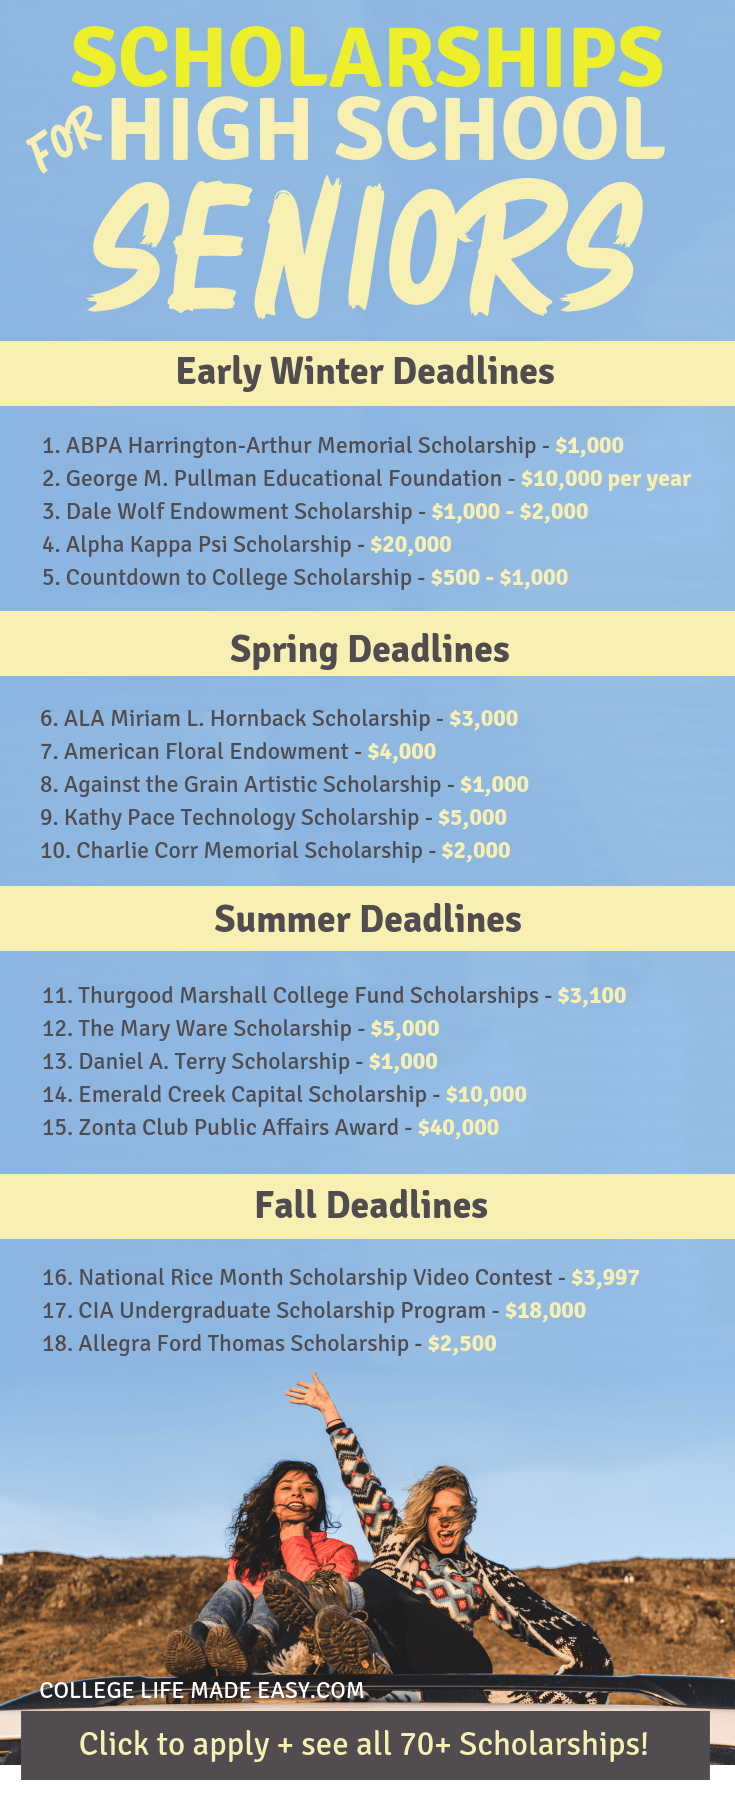 70+ scholarship opportunities for high school senior students! Get on the fast track to funding your college education by applying to these in 2019. Click to see them all! #schoalrships #schoalrship #college #student #highschool #senior #seniors